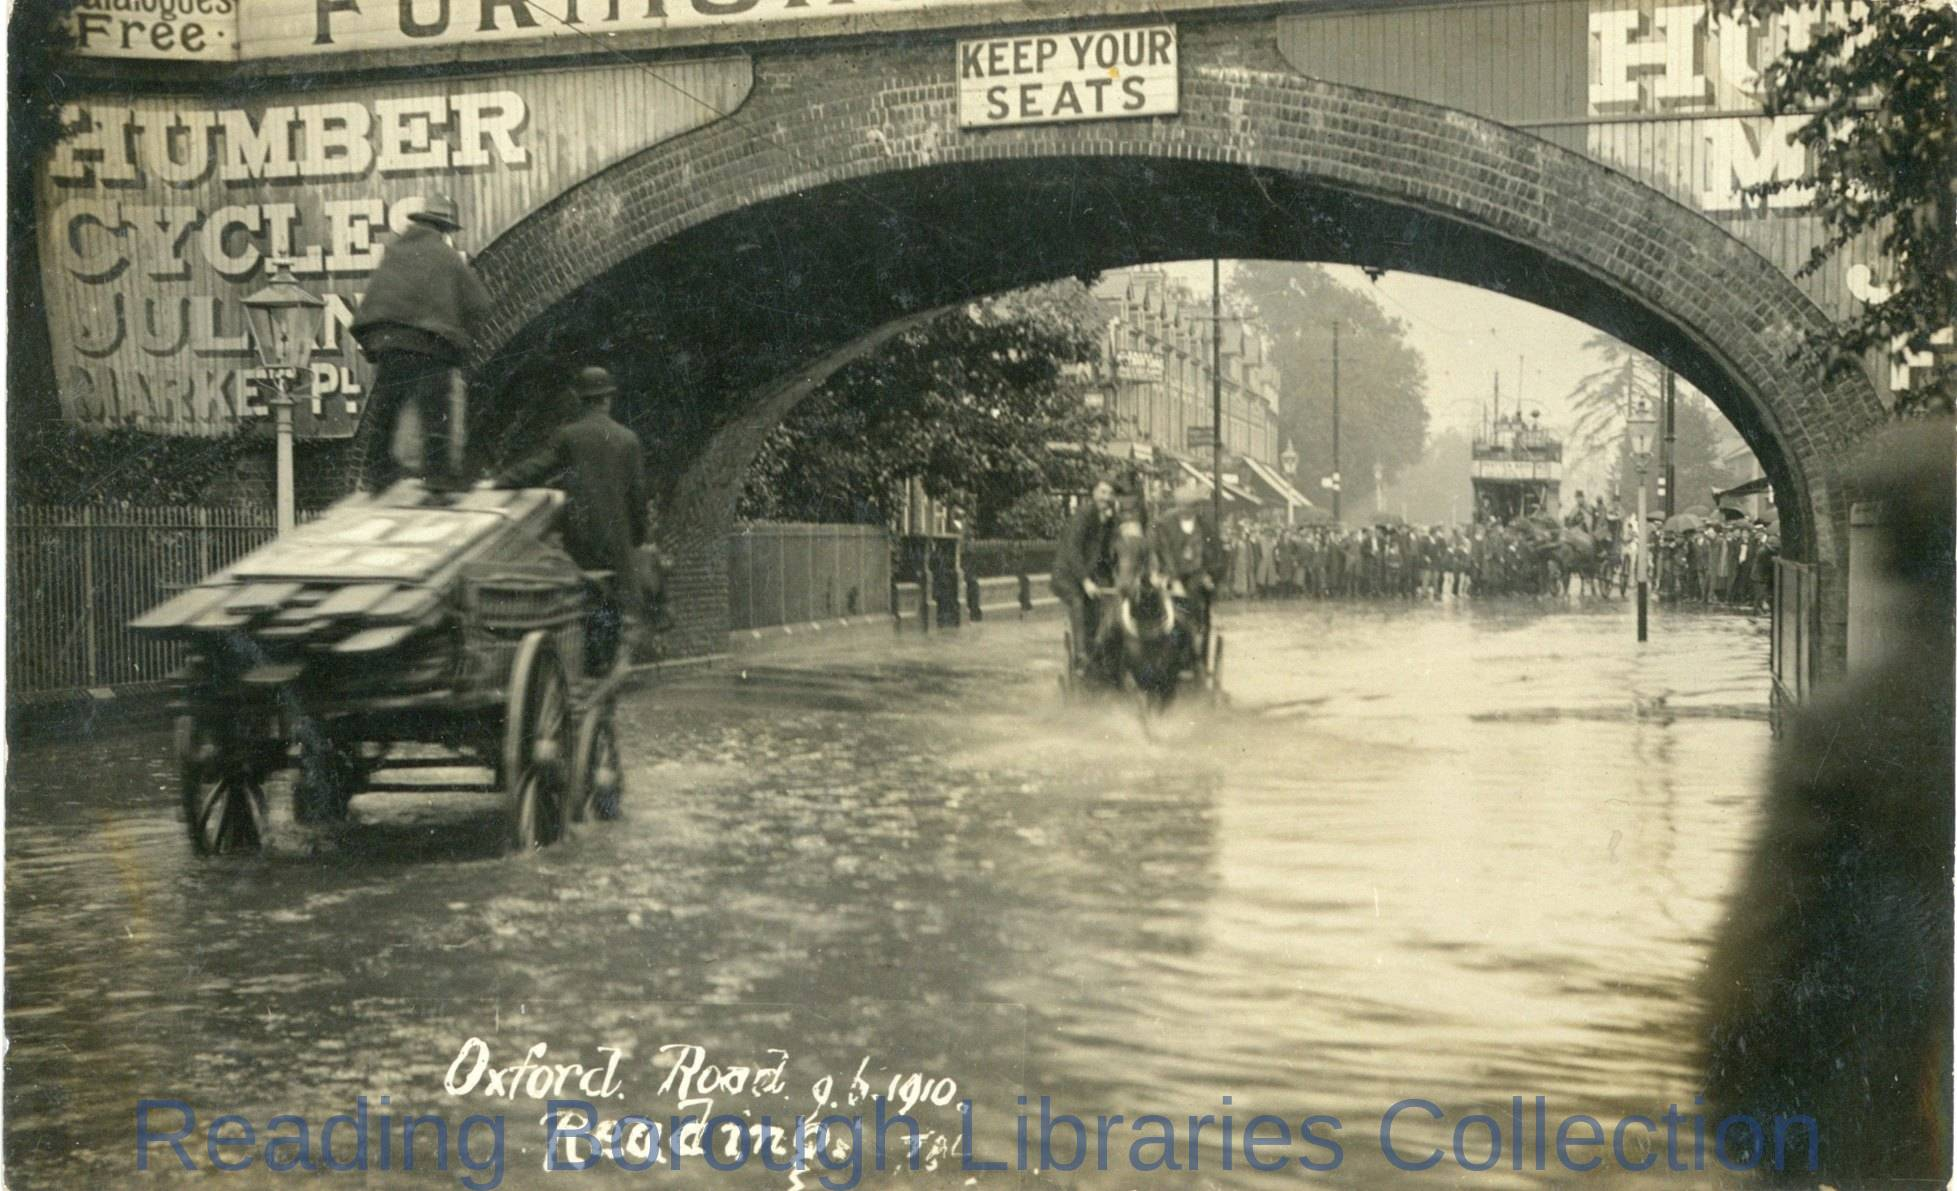 Flooding in Oxford Road, Reading, 9 June 1910.